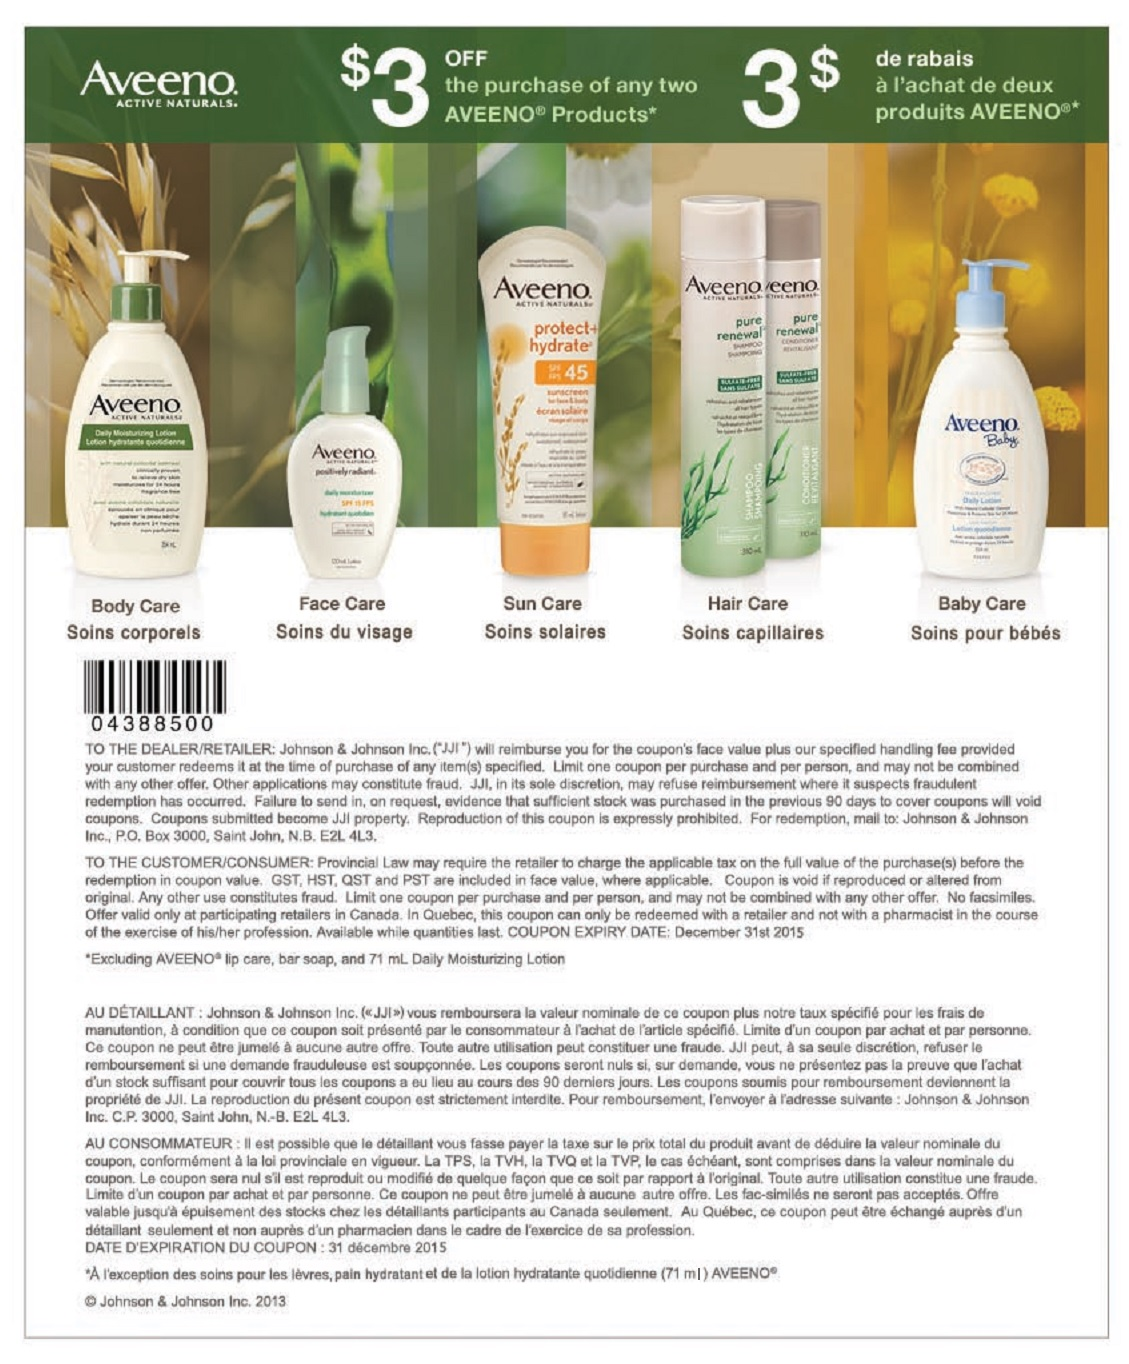 graphic relating to Aveeno Coupon Printable named Discount coupons aveeno canada - Toddlers r us coupon code march 2018